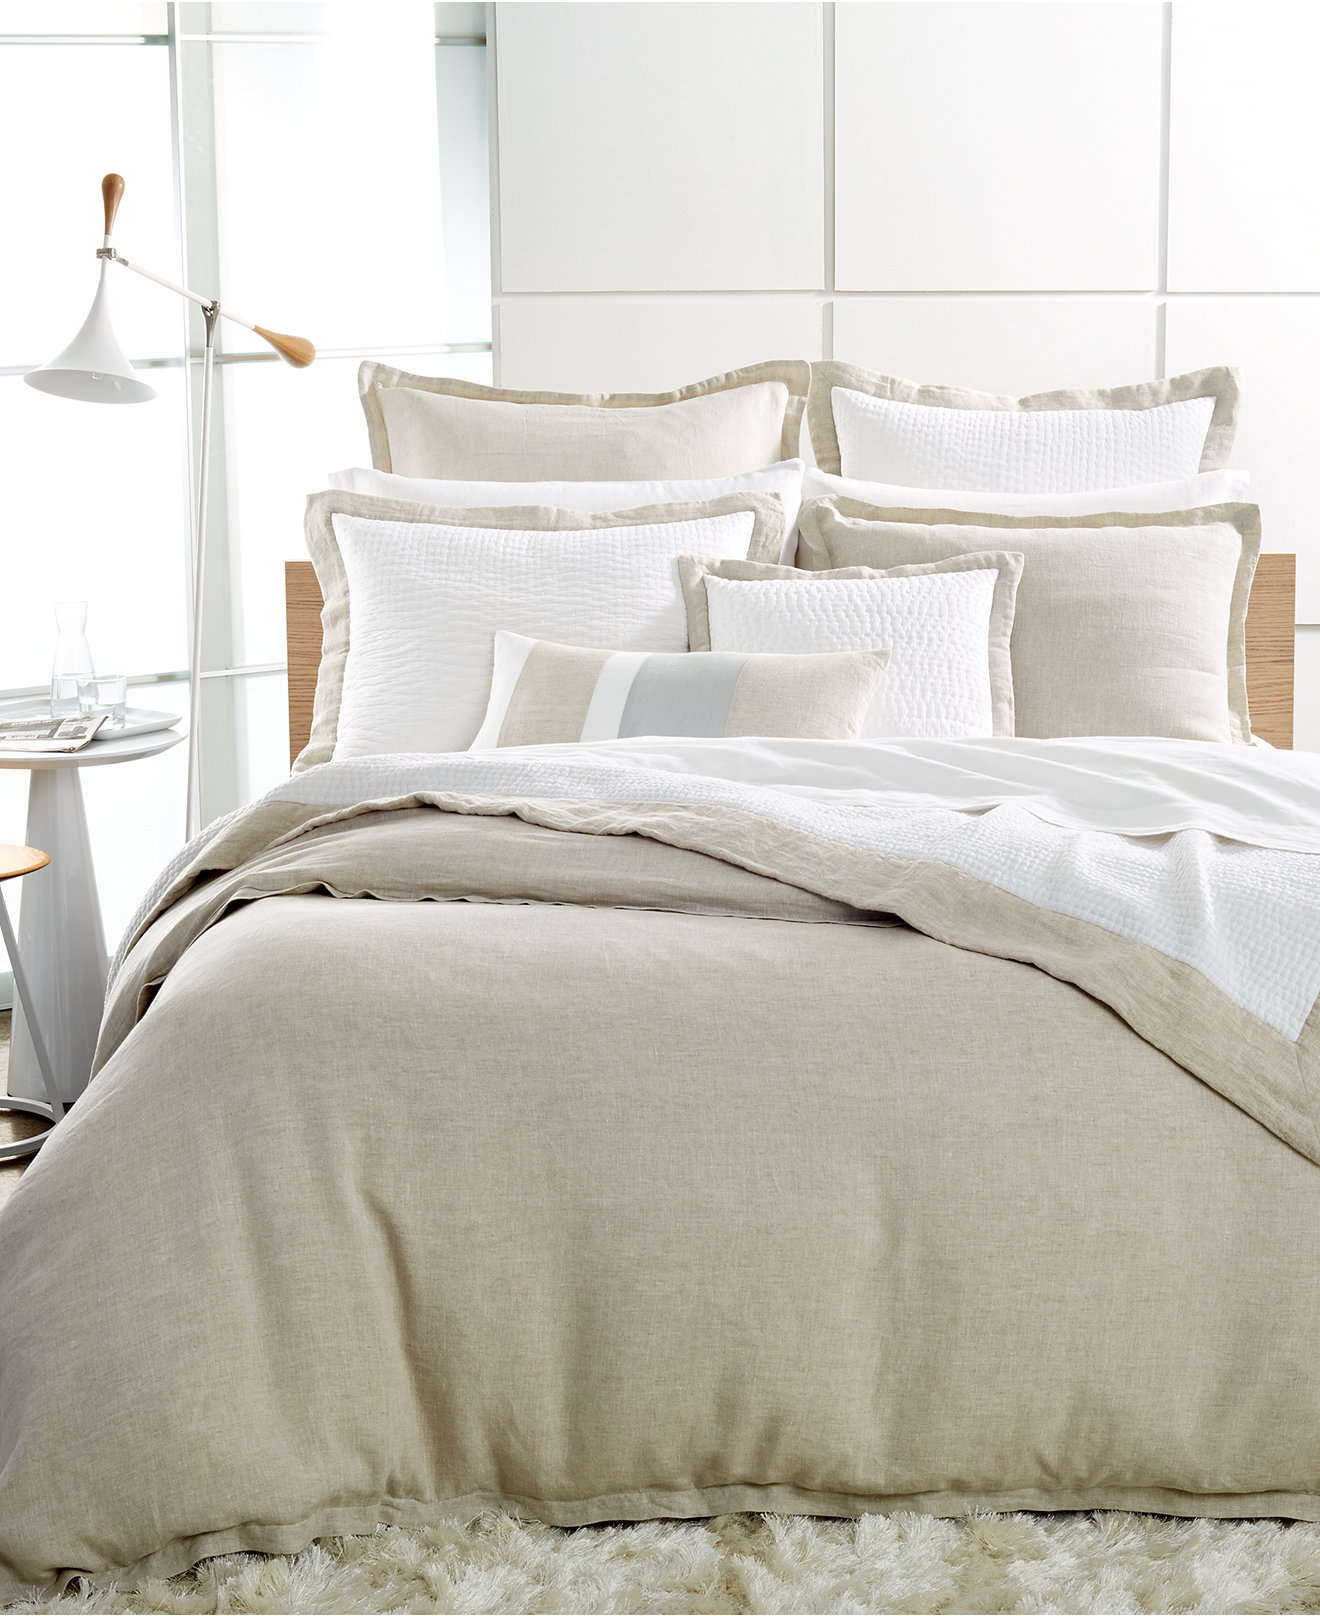 Hotel Collection Linen Natural Duvet Covers - Duvet Covers - Bed & Bath - Macy's